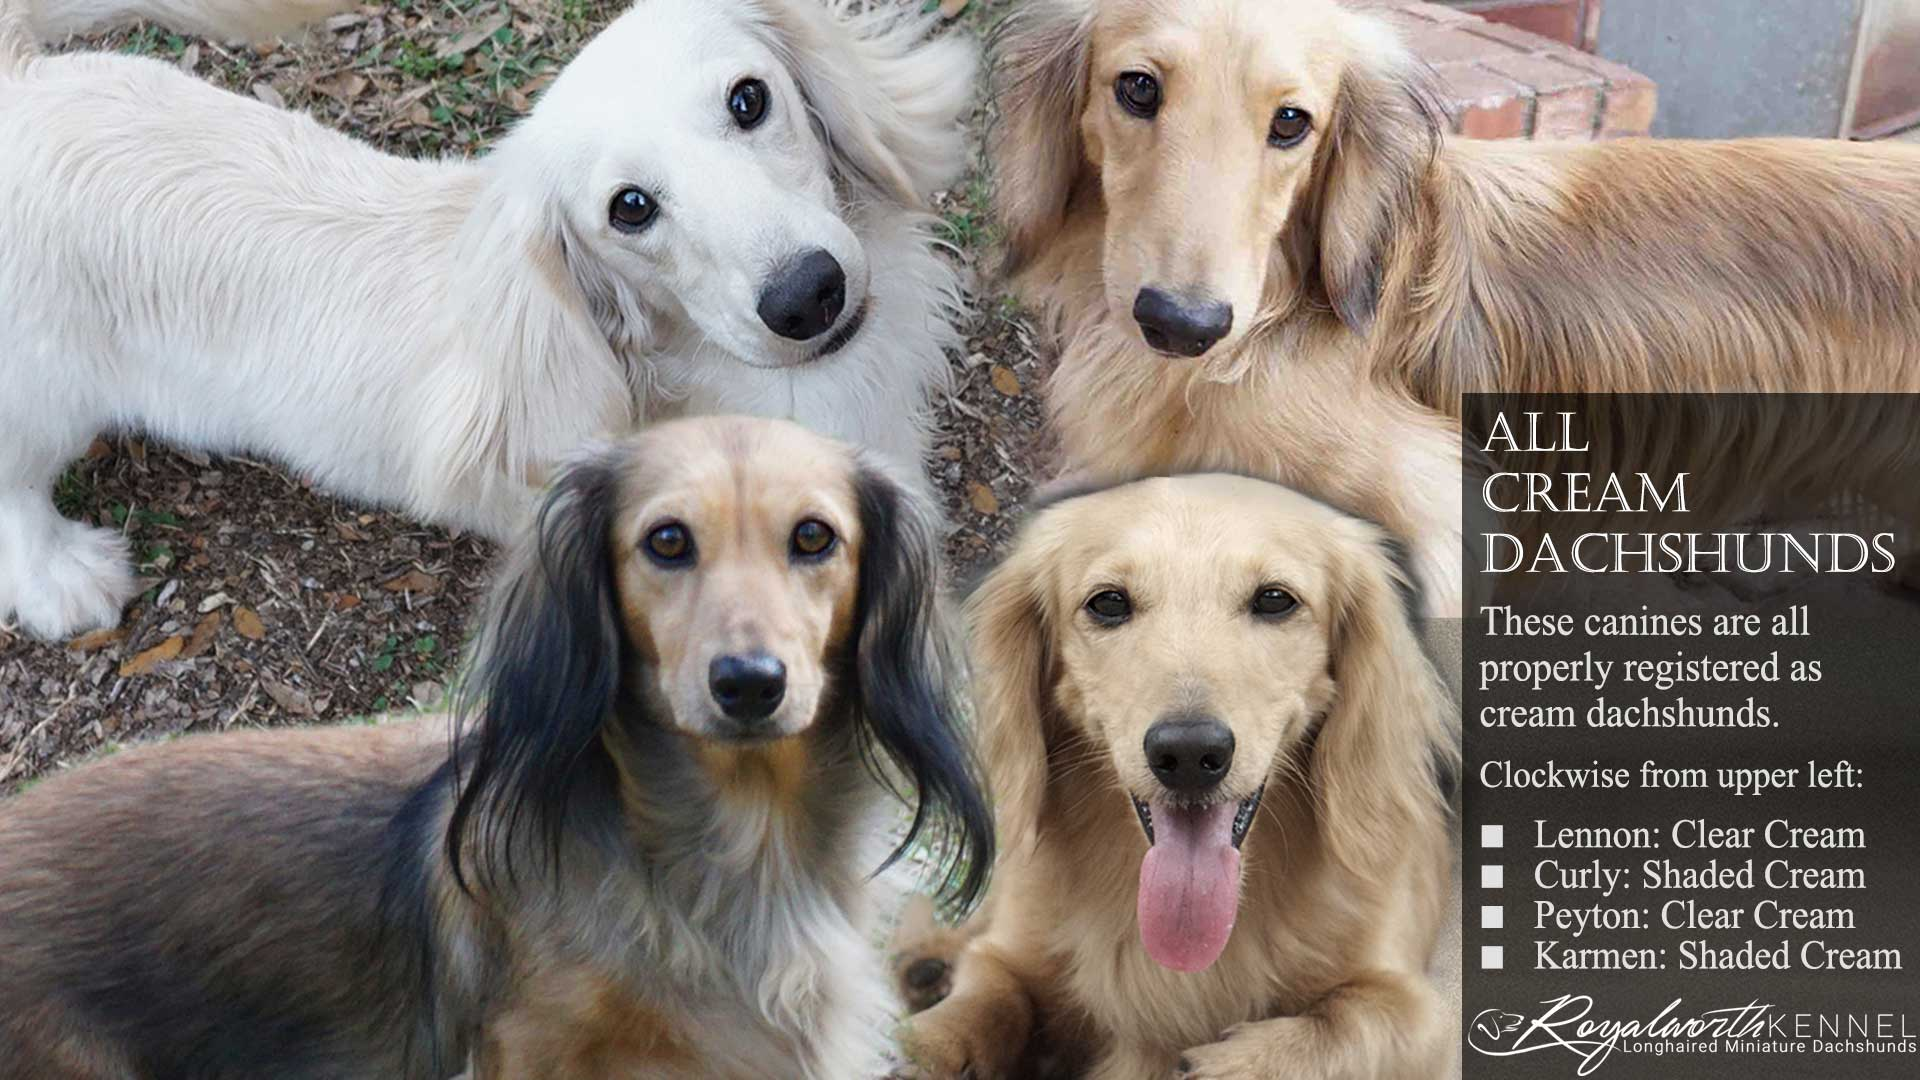 Four Cream Dachshunds. All of these dachshunds, while very different in appearance, are properly registered as cream.